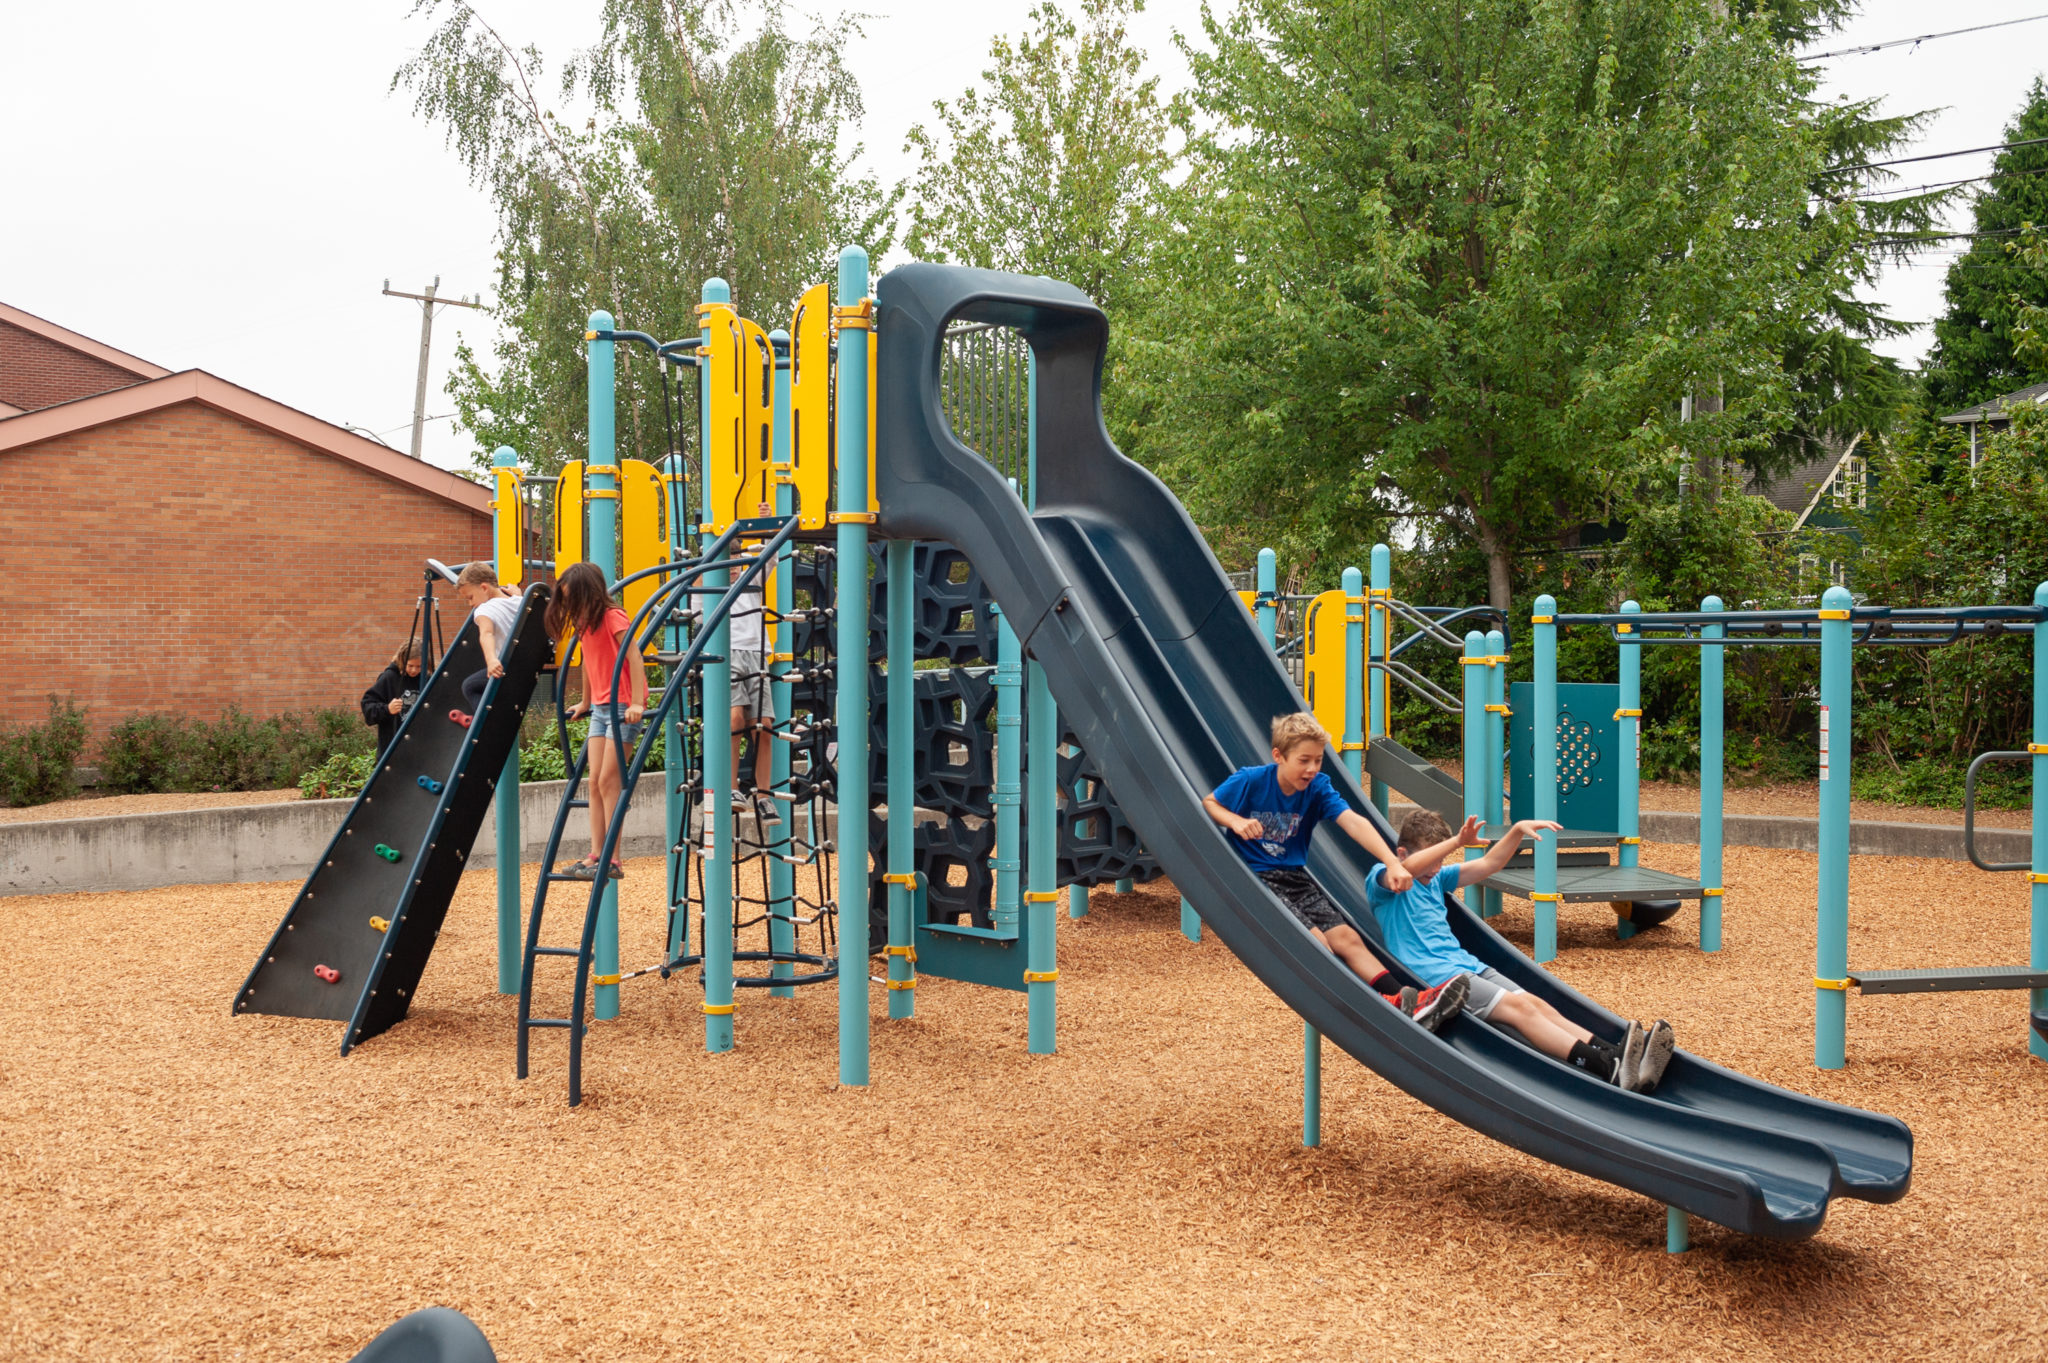 Whittier Elementary School Playground